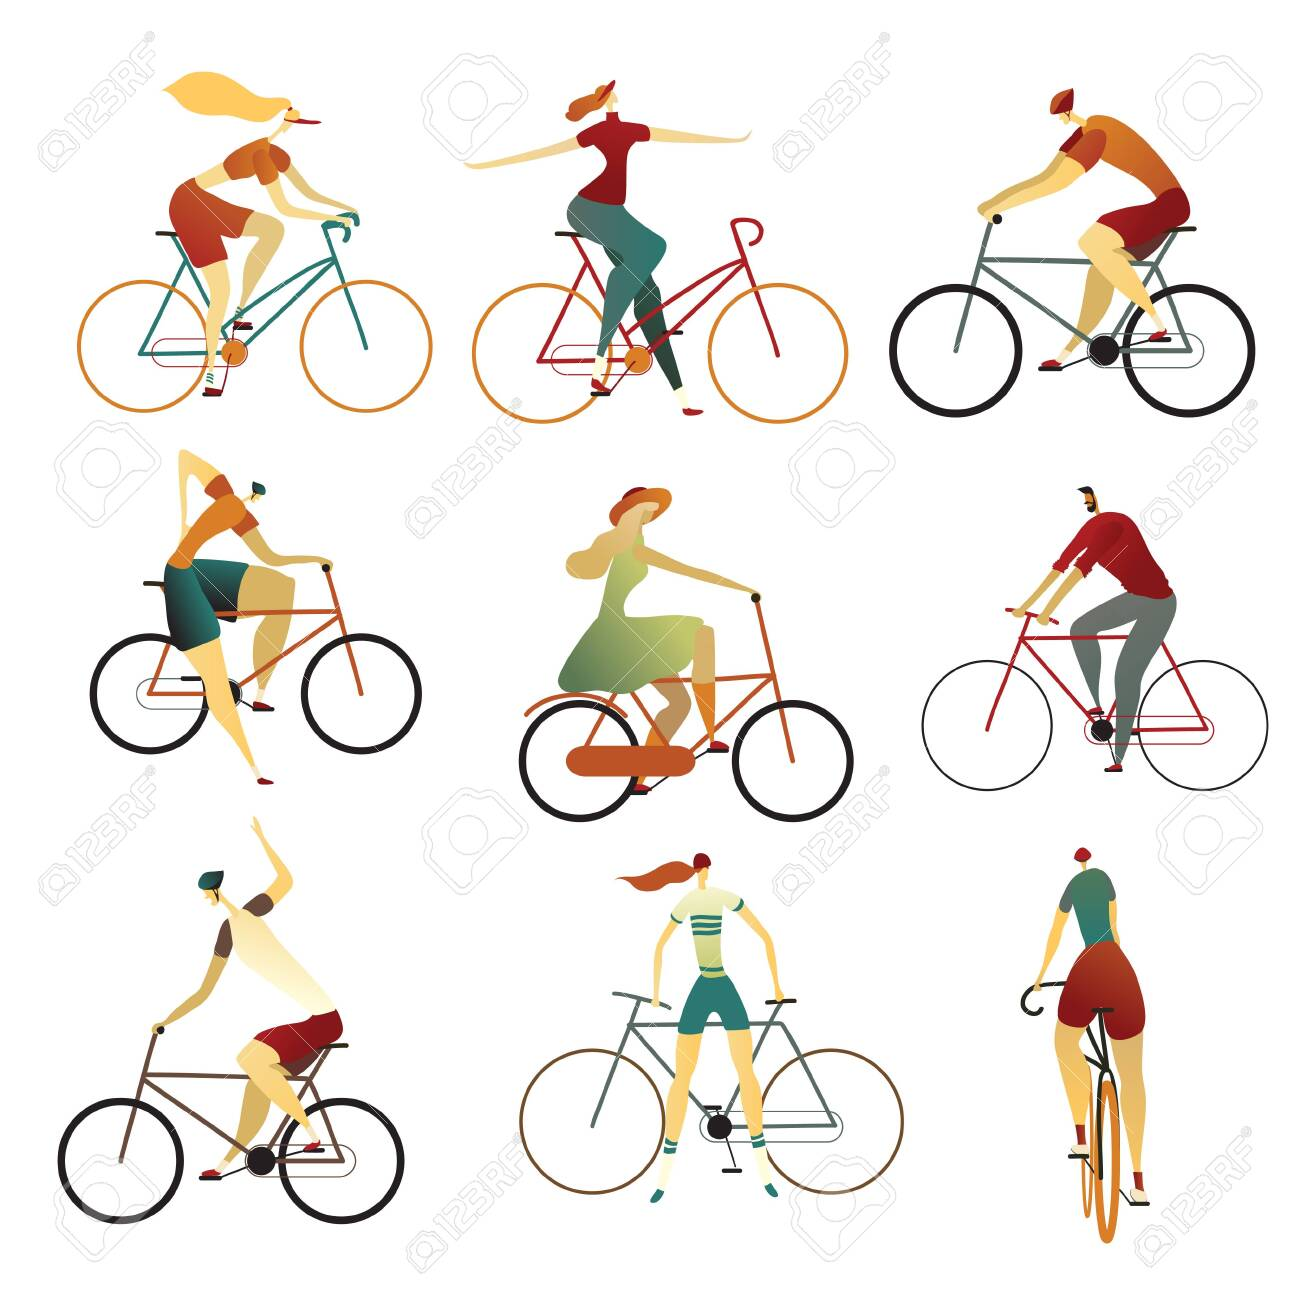 Collection of people riding bicycles of various types - city, bmx, hybrid, cruiser, single speed, fixed gear.. Set of cartoon men and women on bikes. Colorful vector illustration on a white background. - 123511278